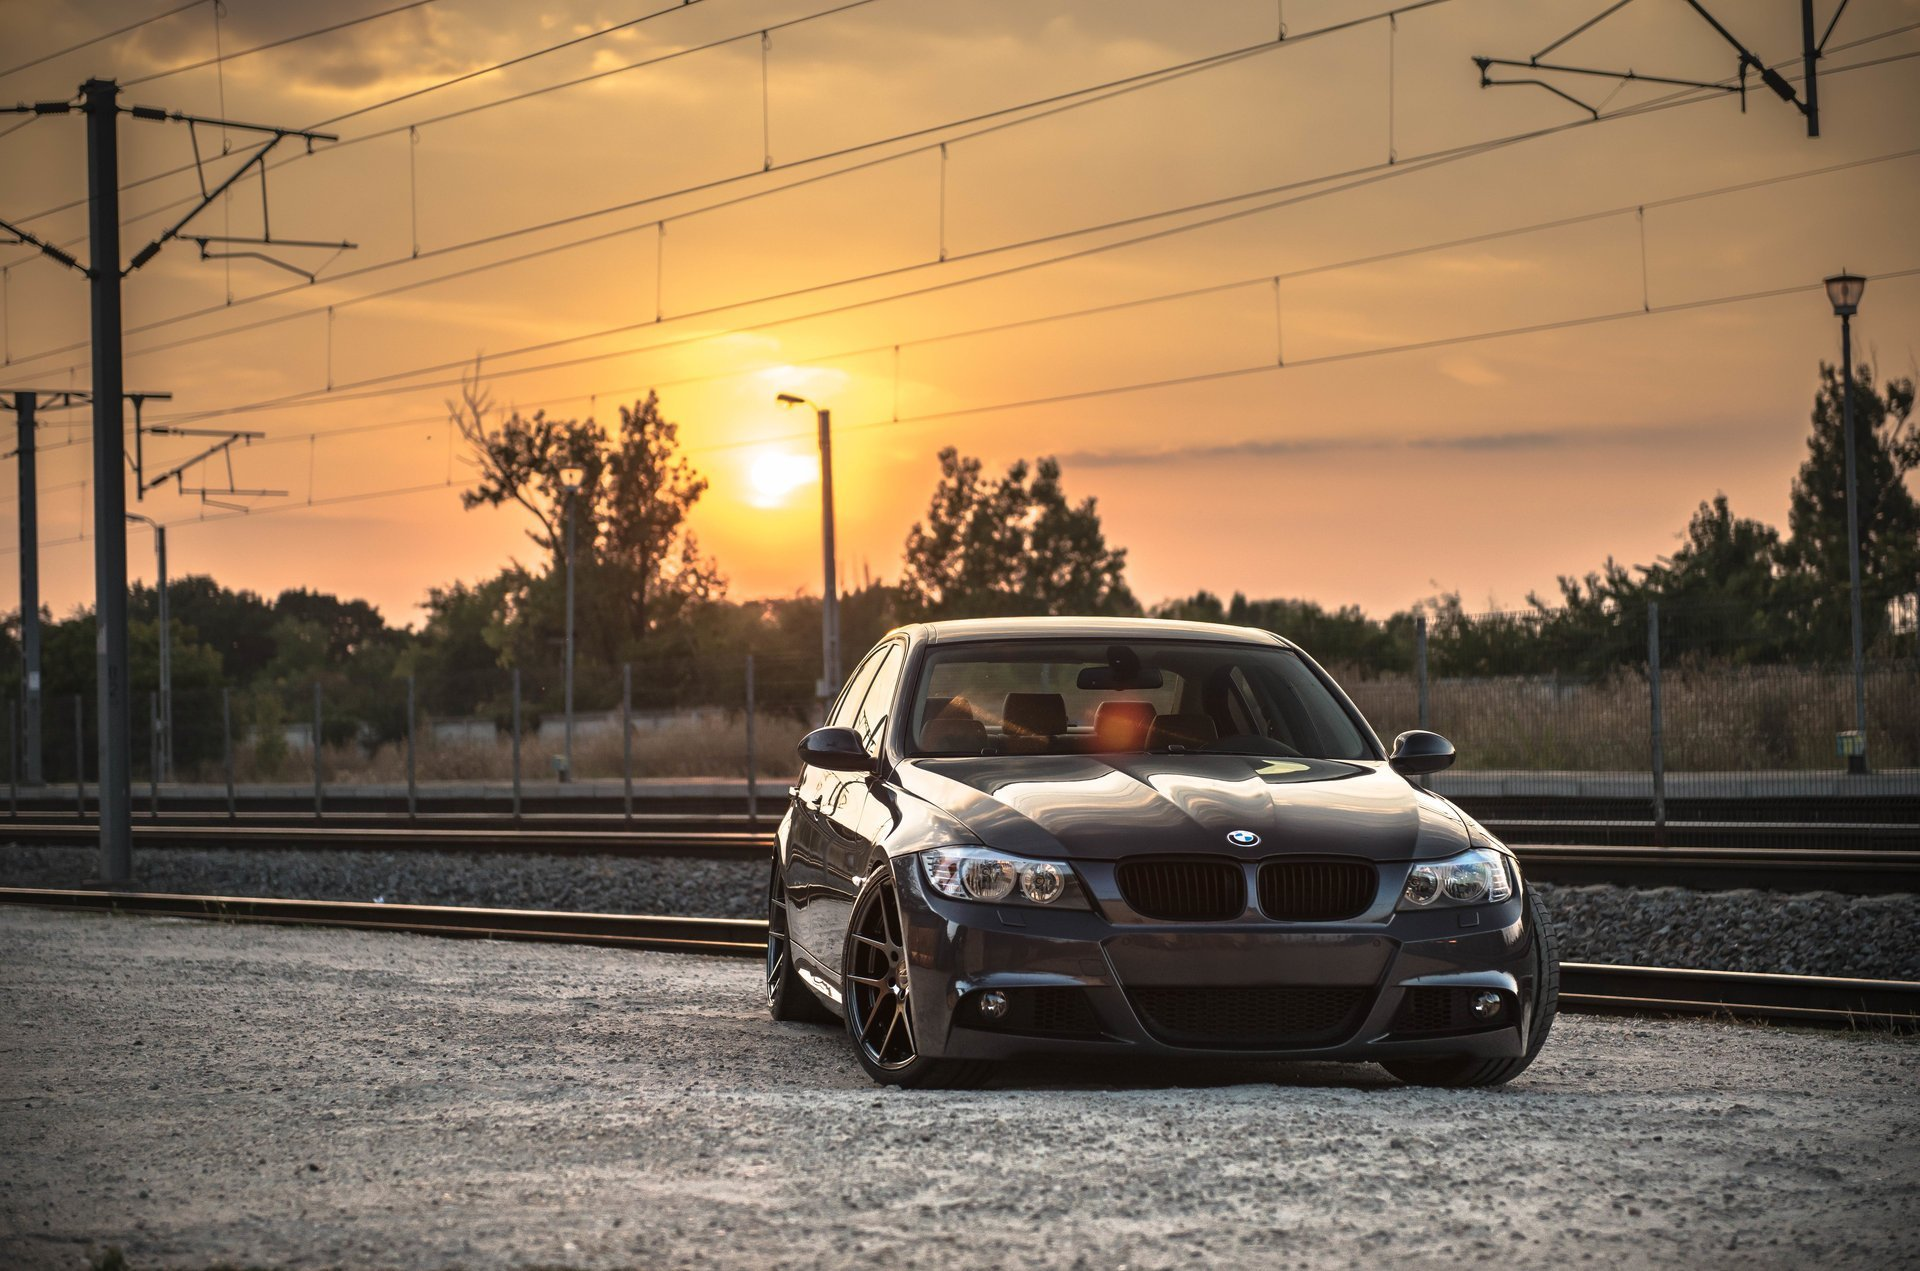 bmw-e90-deep-concave-bmw-tuning-drives-sunset-railroad